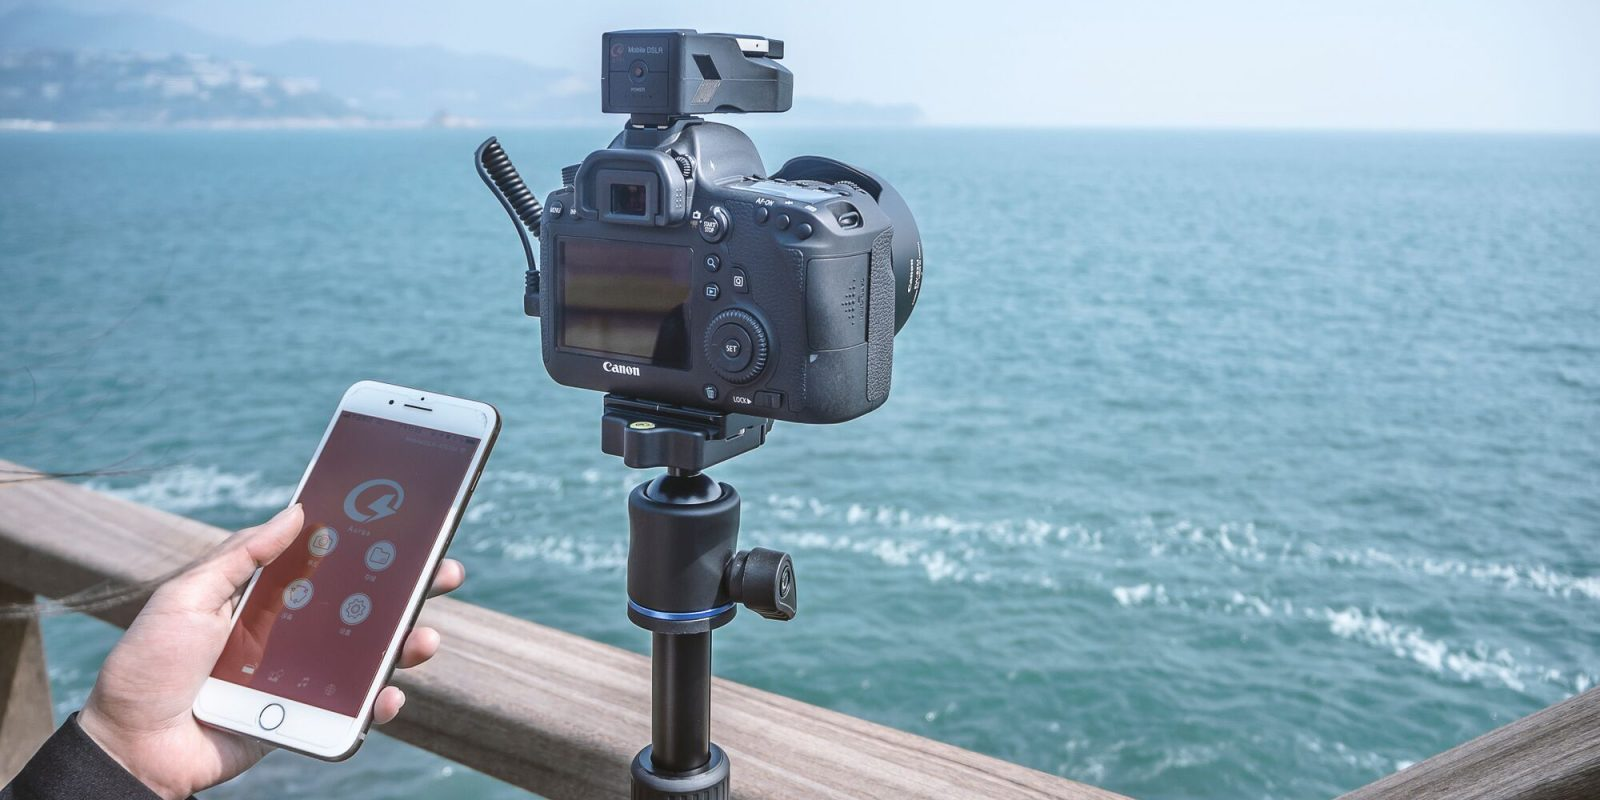 Aurga is the 'world's first smart DSLR assistant' to help you take your best shots